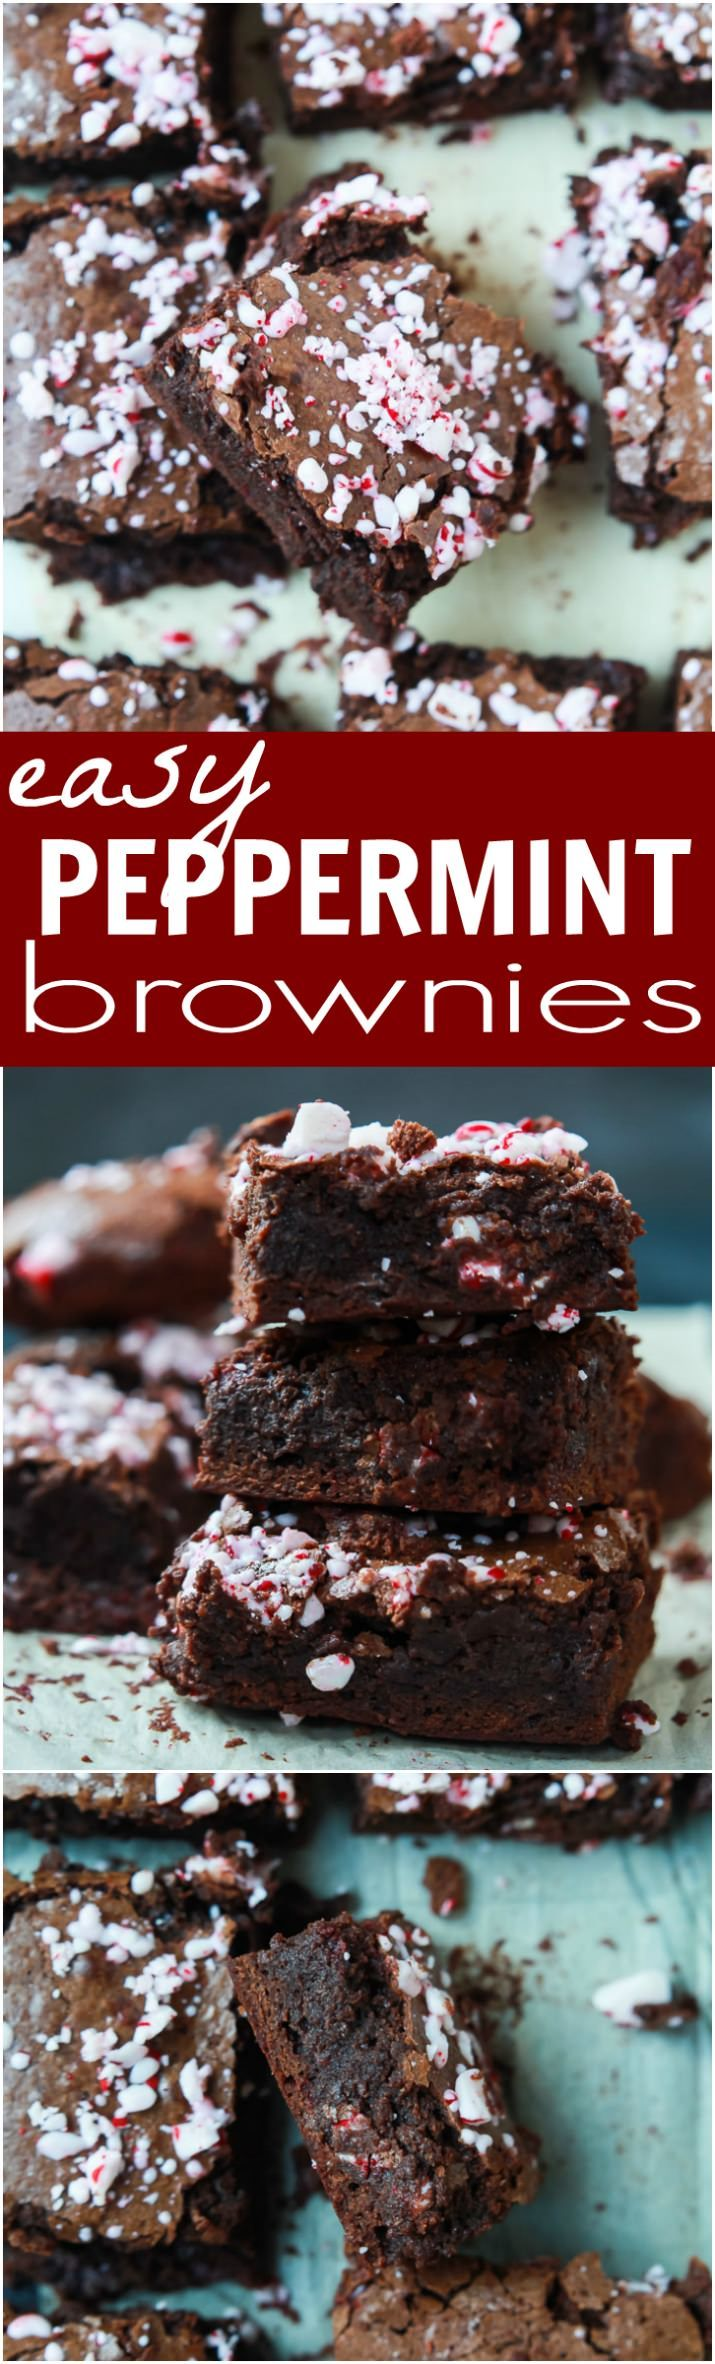 The BEST Peppermint Brownies made from scratch with a secret ingredient to make them extra fudgy then topped with crushed candy canes for the perfect holiday finishing touch! | joyfulhealthyeats.com